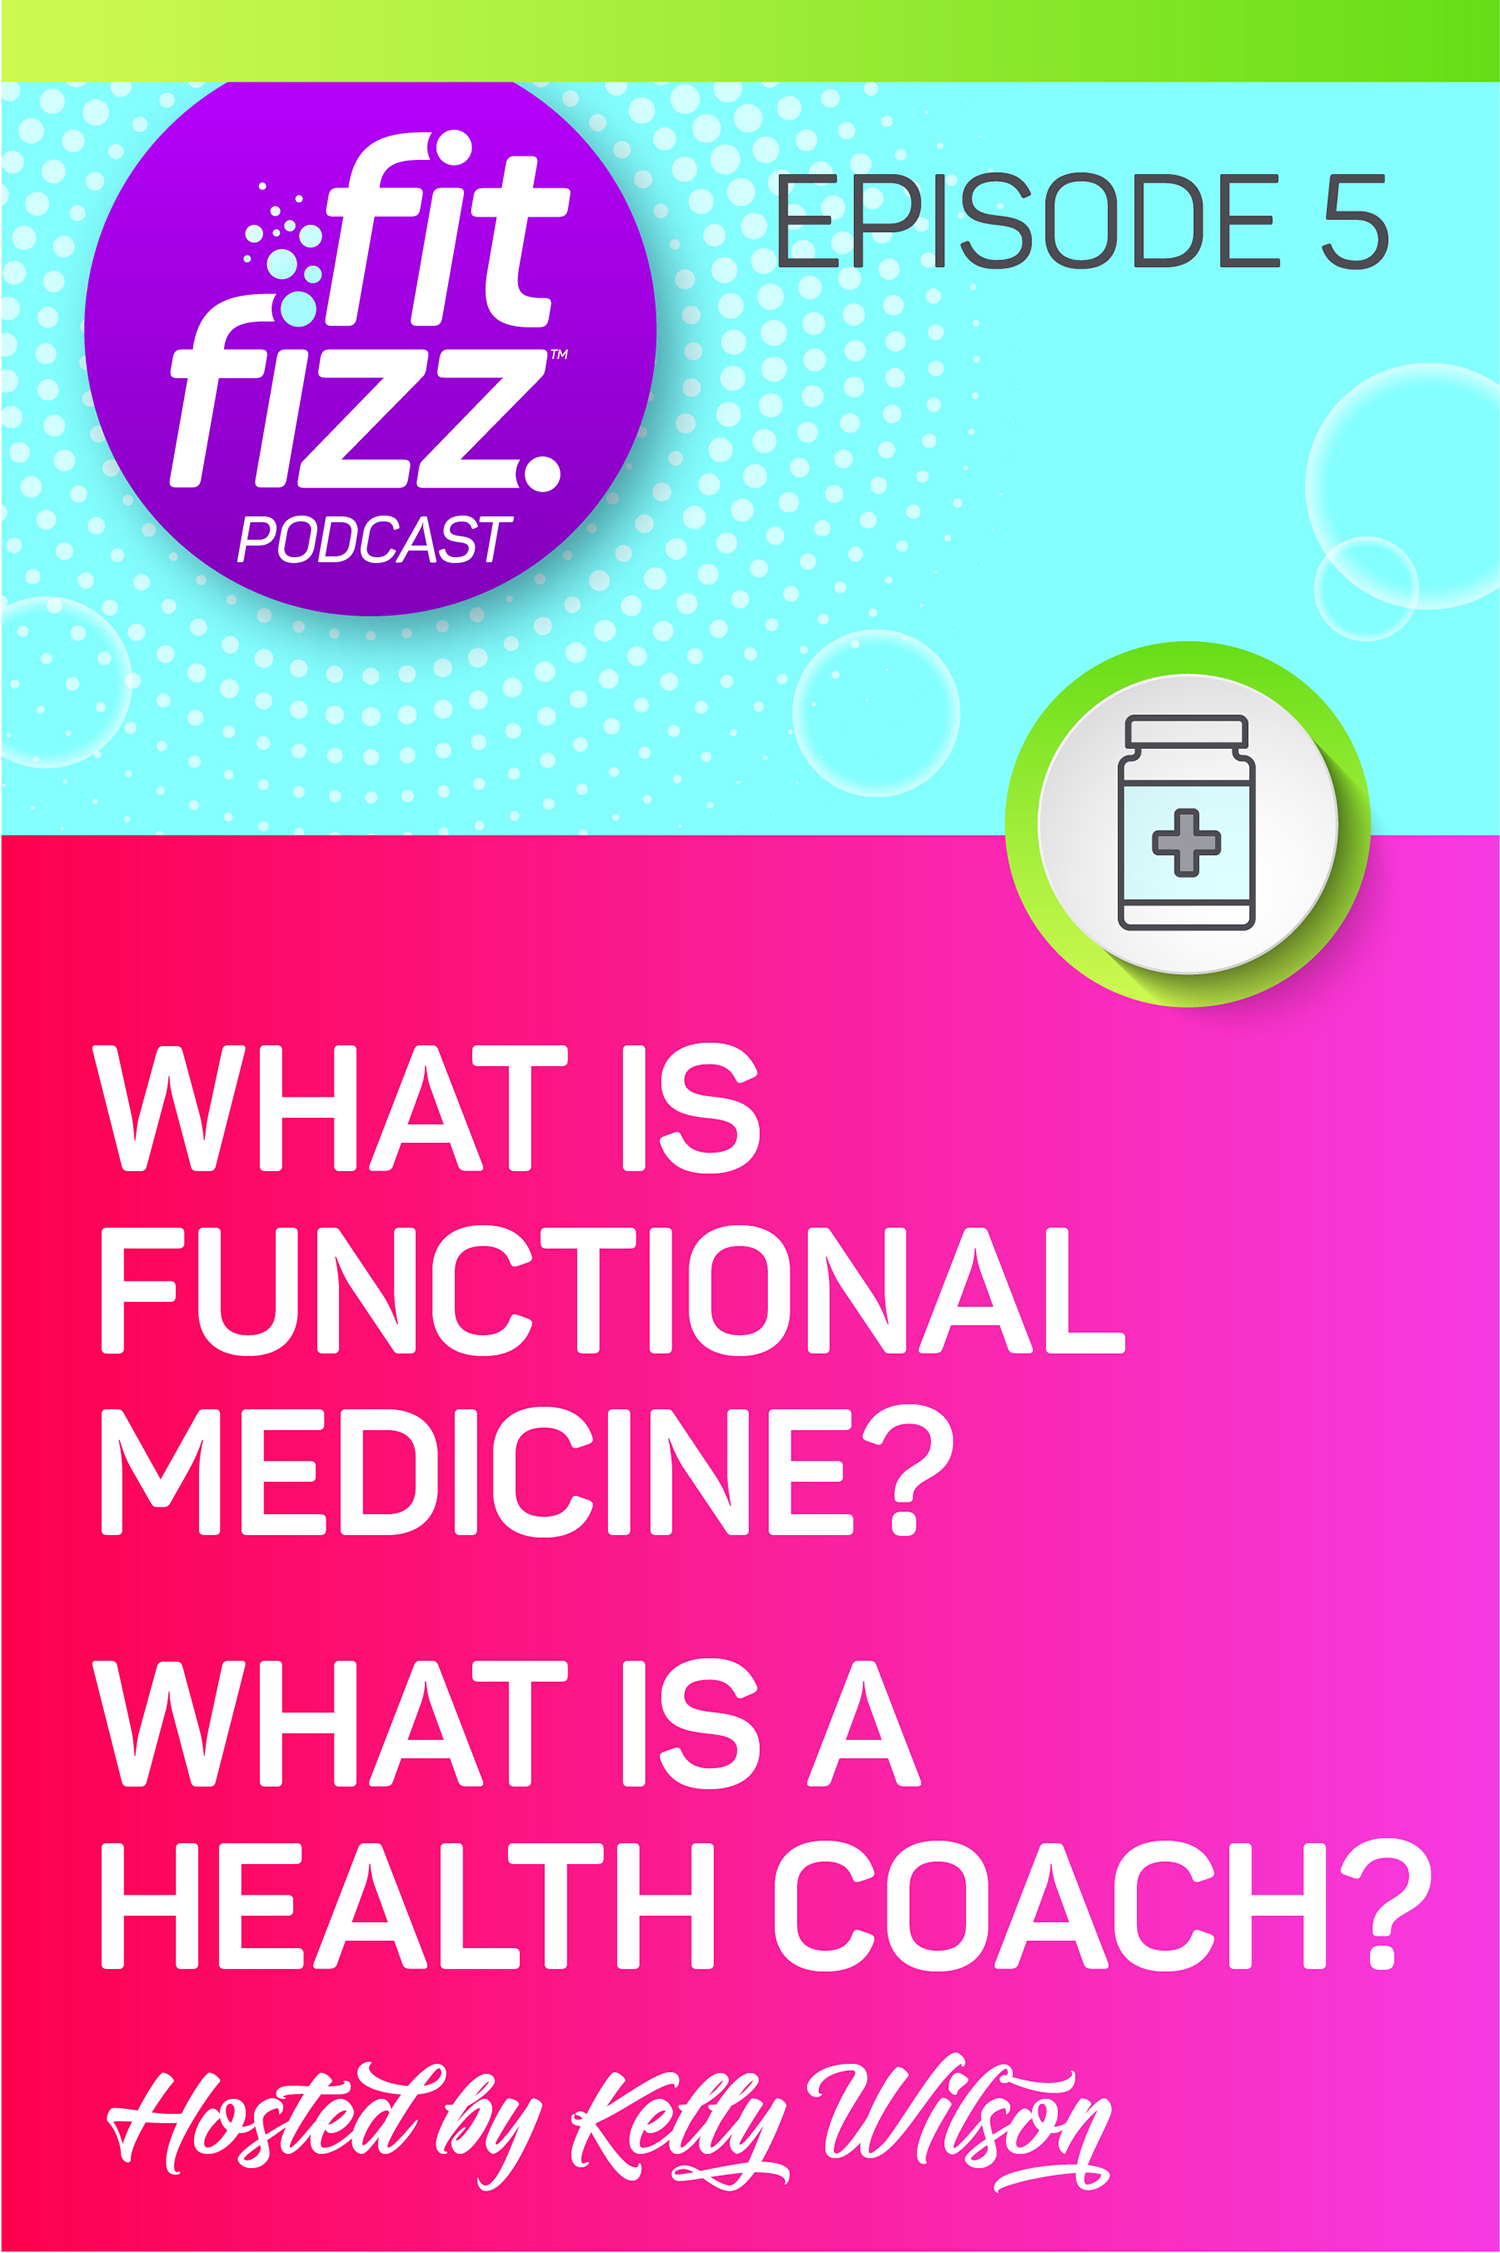 Let's dive into what exactly a health coach or nutrition coach does, what functional medicine is, and why I feel so strongly that they are a major part of the future of healthcare. There is a lot of misinformation presented by modern practitioners that can lead to harmful consequences. Listen in to learn more about functional medicine, and when it might be the right time to turn to it.